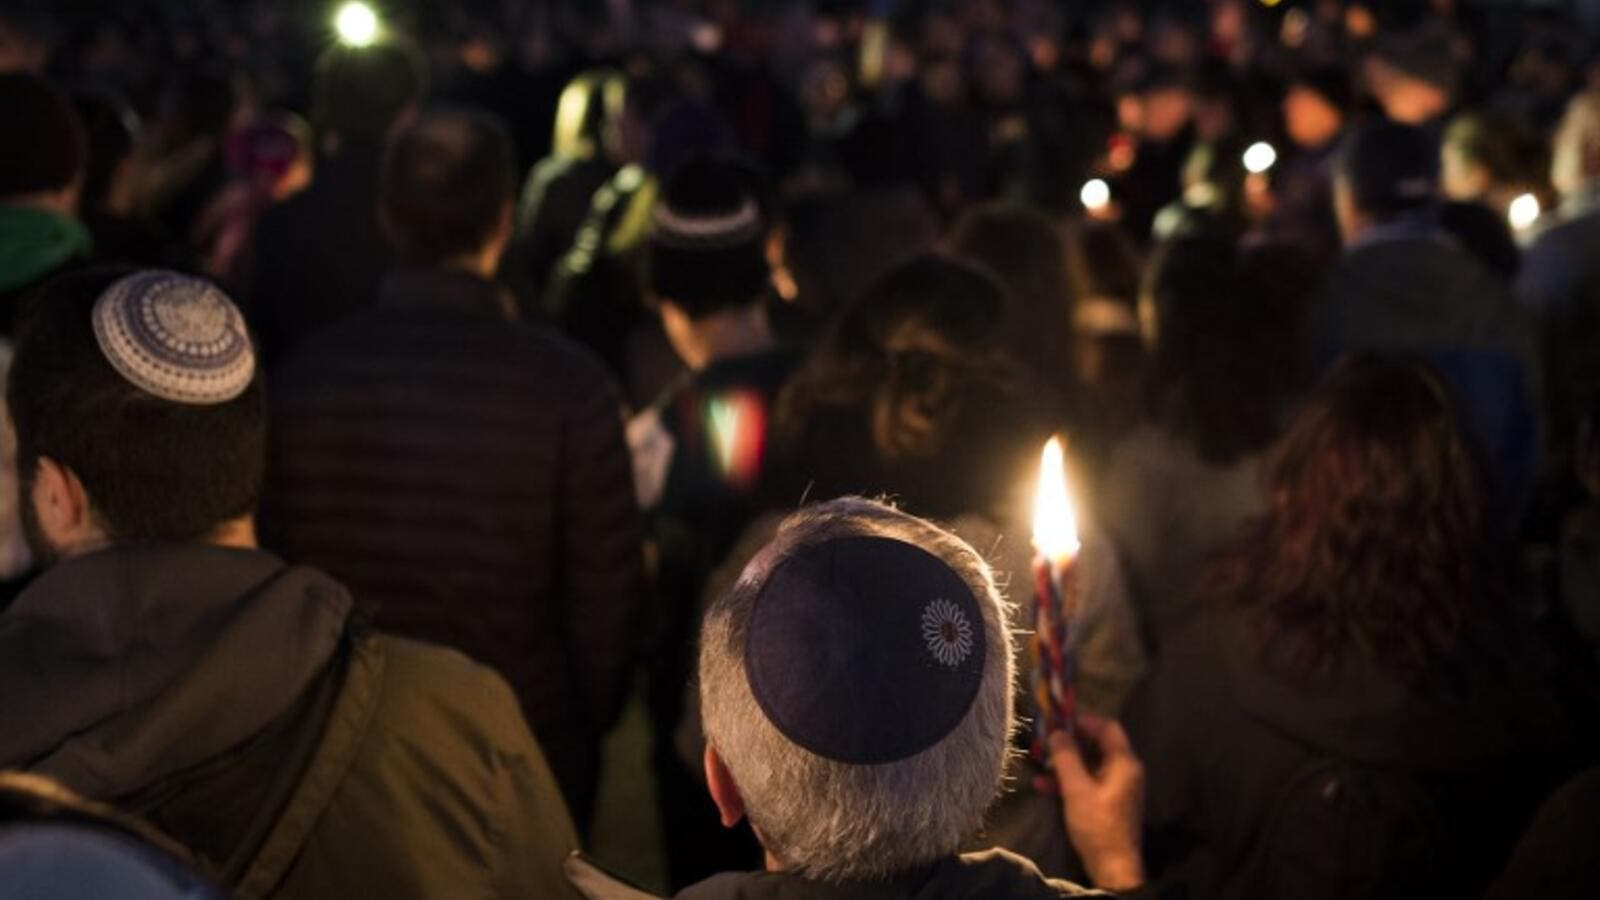 Members and supporters of the Jewish community come together for a candlelight vigil, in remembrance of those who died earlier in the day during a shooting at the Tree of Life Synagogue in the Squirrel Hill neighborhood of Pittsburgh, in front of the White House in Washington, DC on October 27, 2018 (AFP)